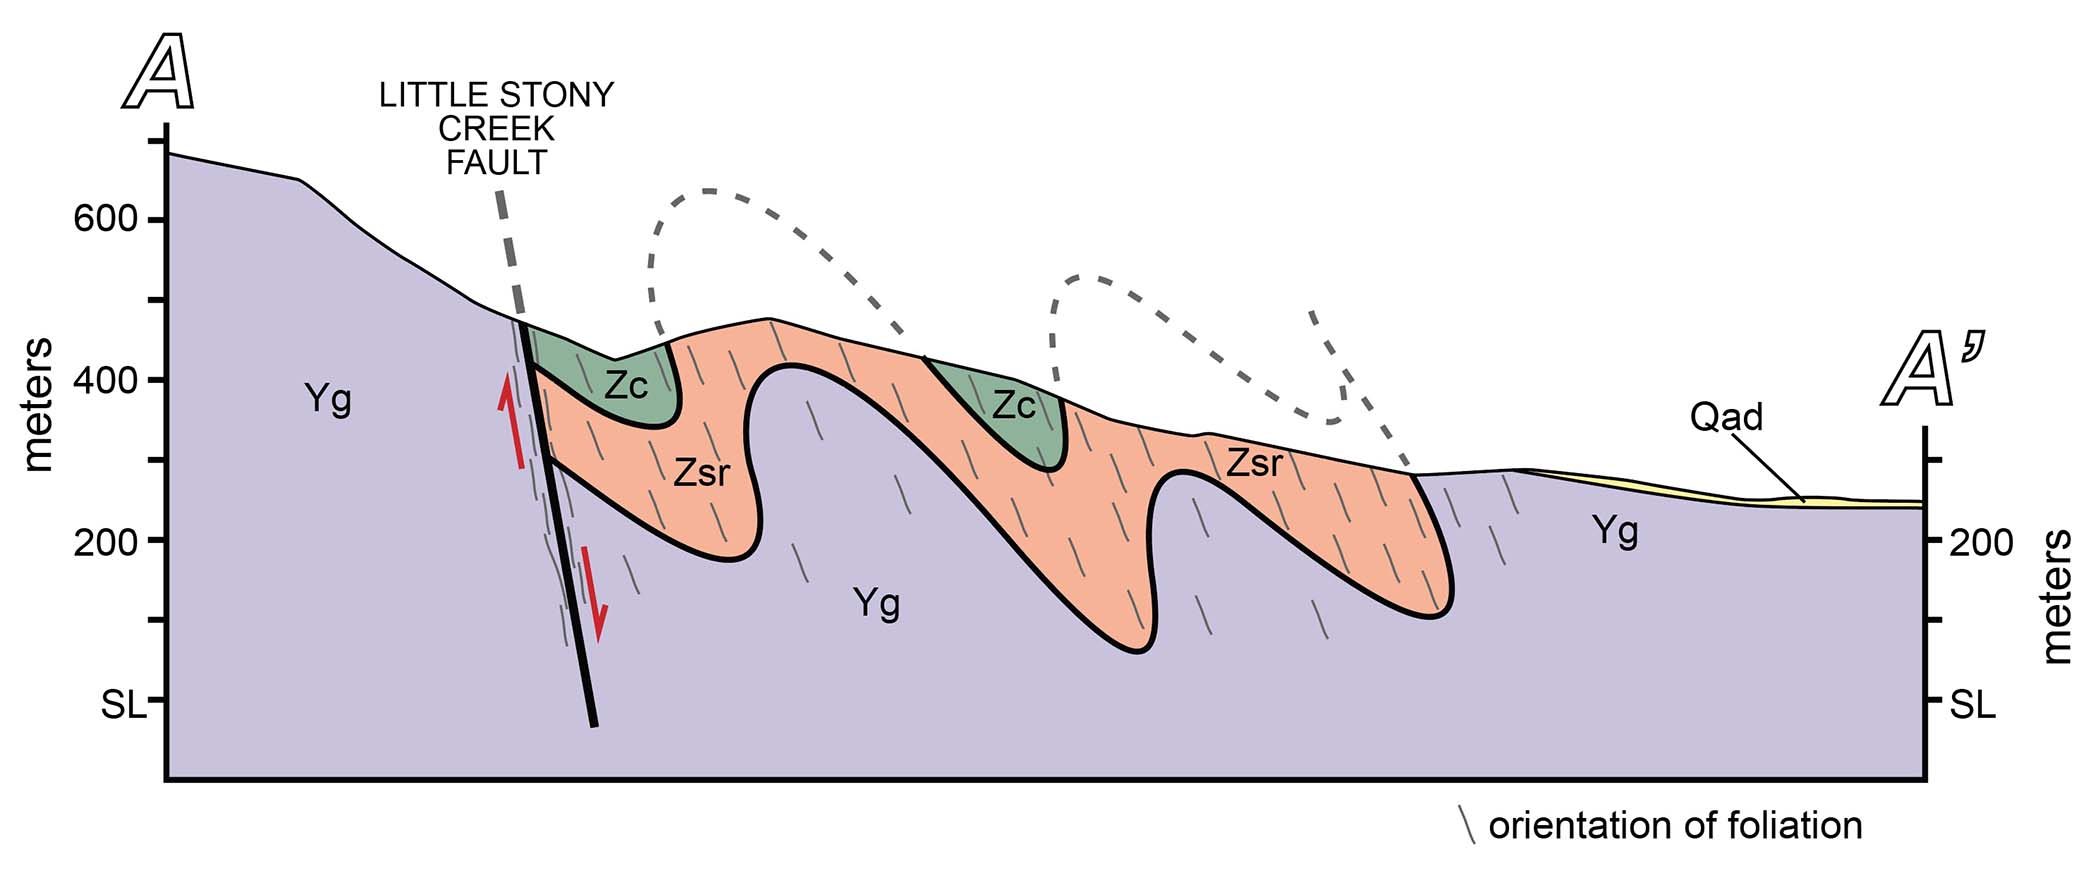 Cross section showing the rock structure below the earth's surface